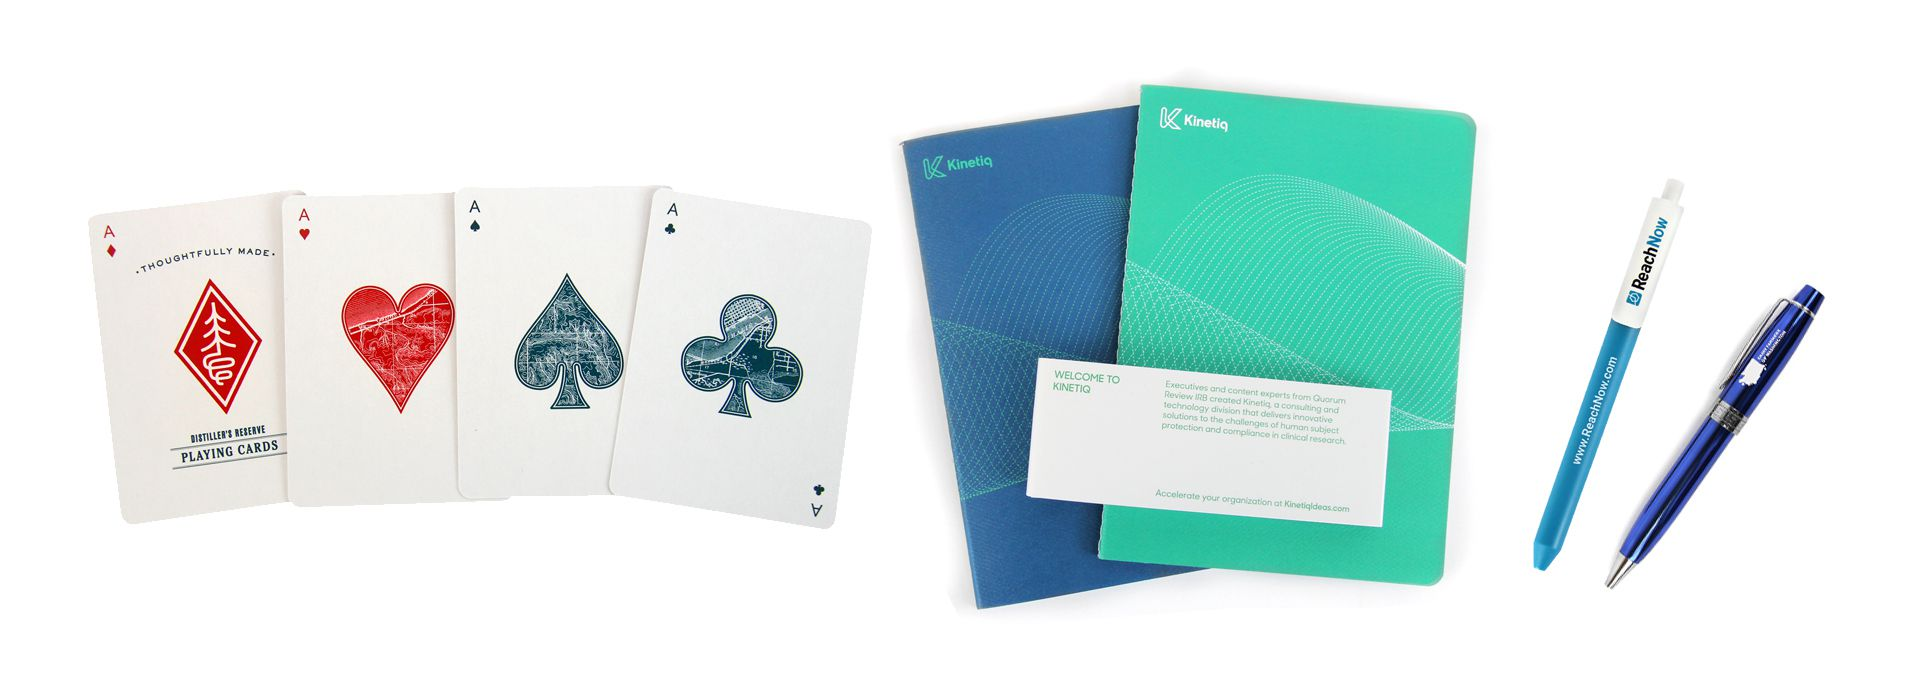 custom-printed-paper-products-seattle-promotional-products- company